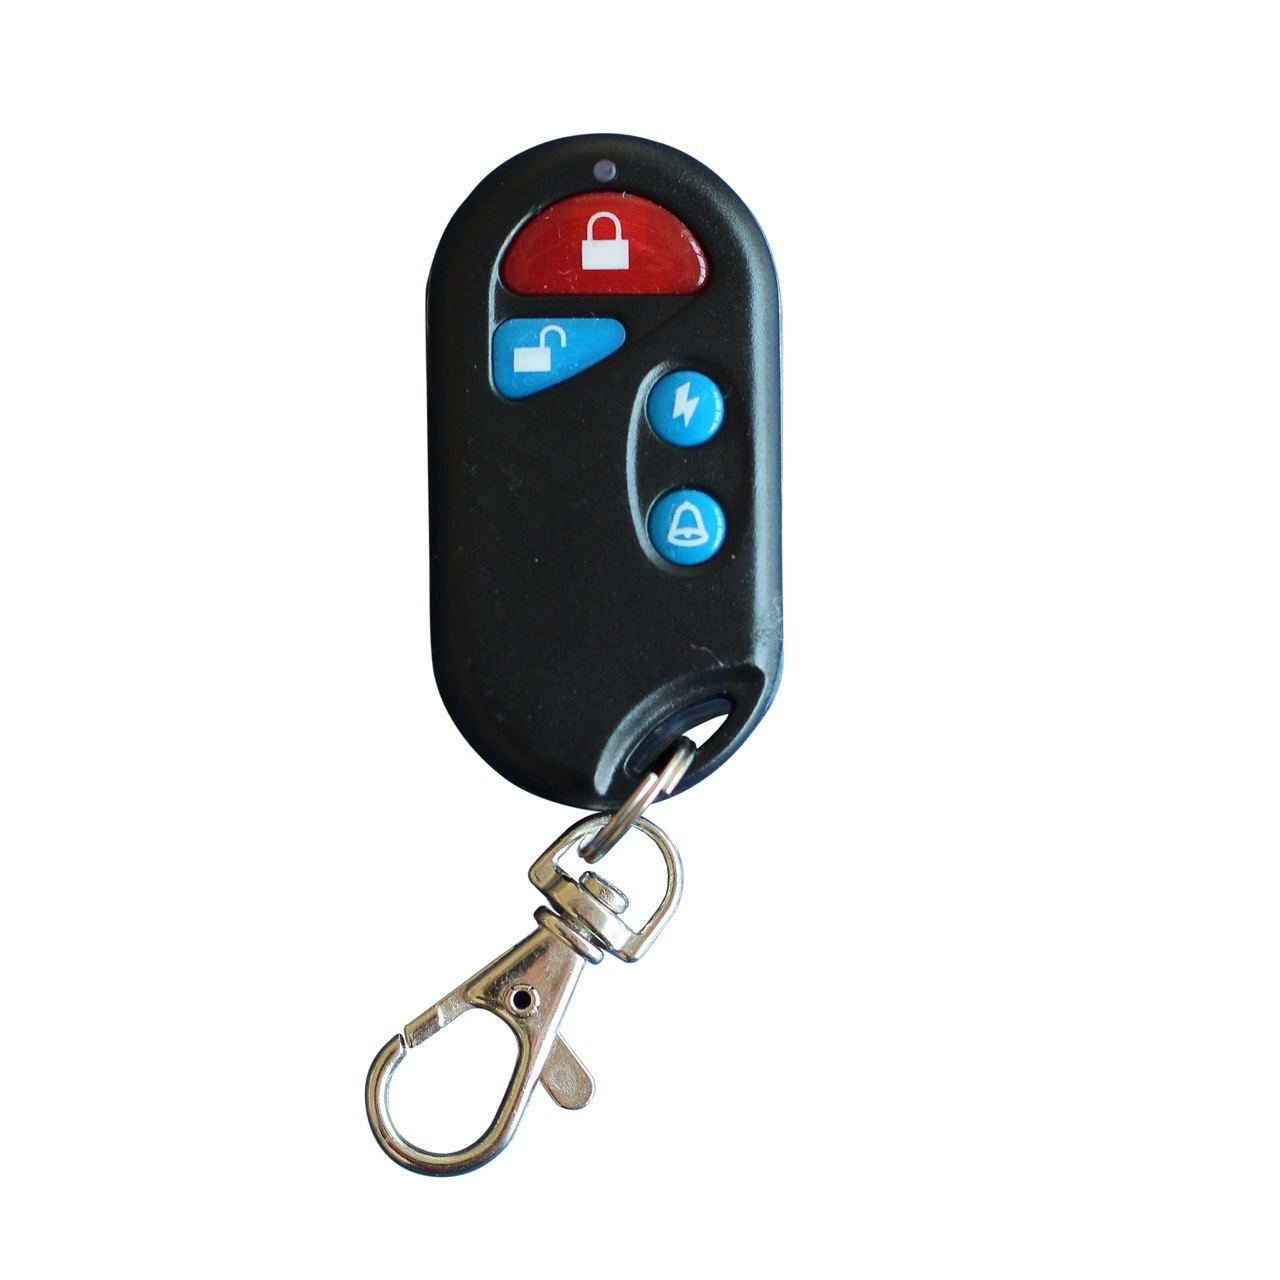 Wireless Waterproof Little RF Remote Control Transmitter